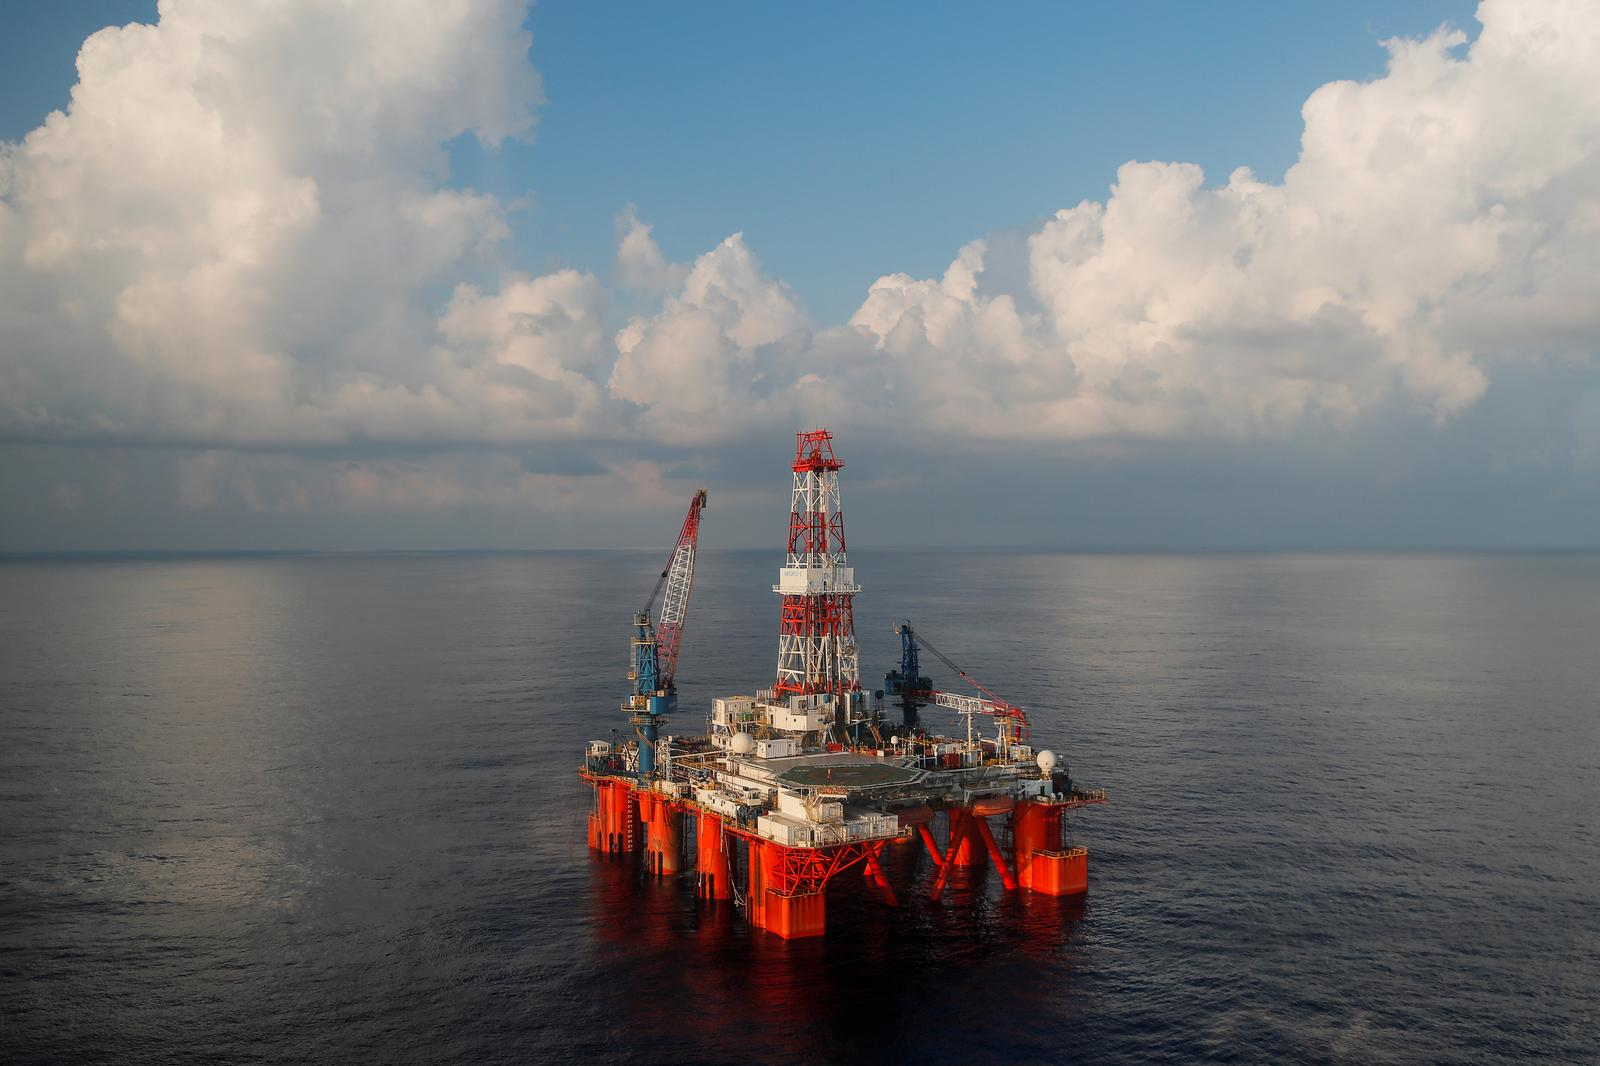 The Hakuryu-5 oil rig operates in the East Vietnam Sea off the coast of Vung Tau, Vietnam on April 29, 2018. Photo: Reuters